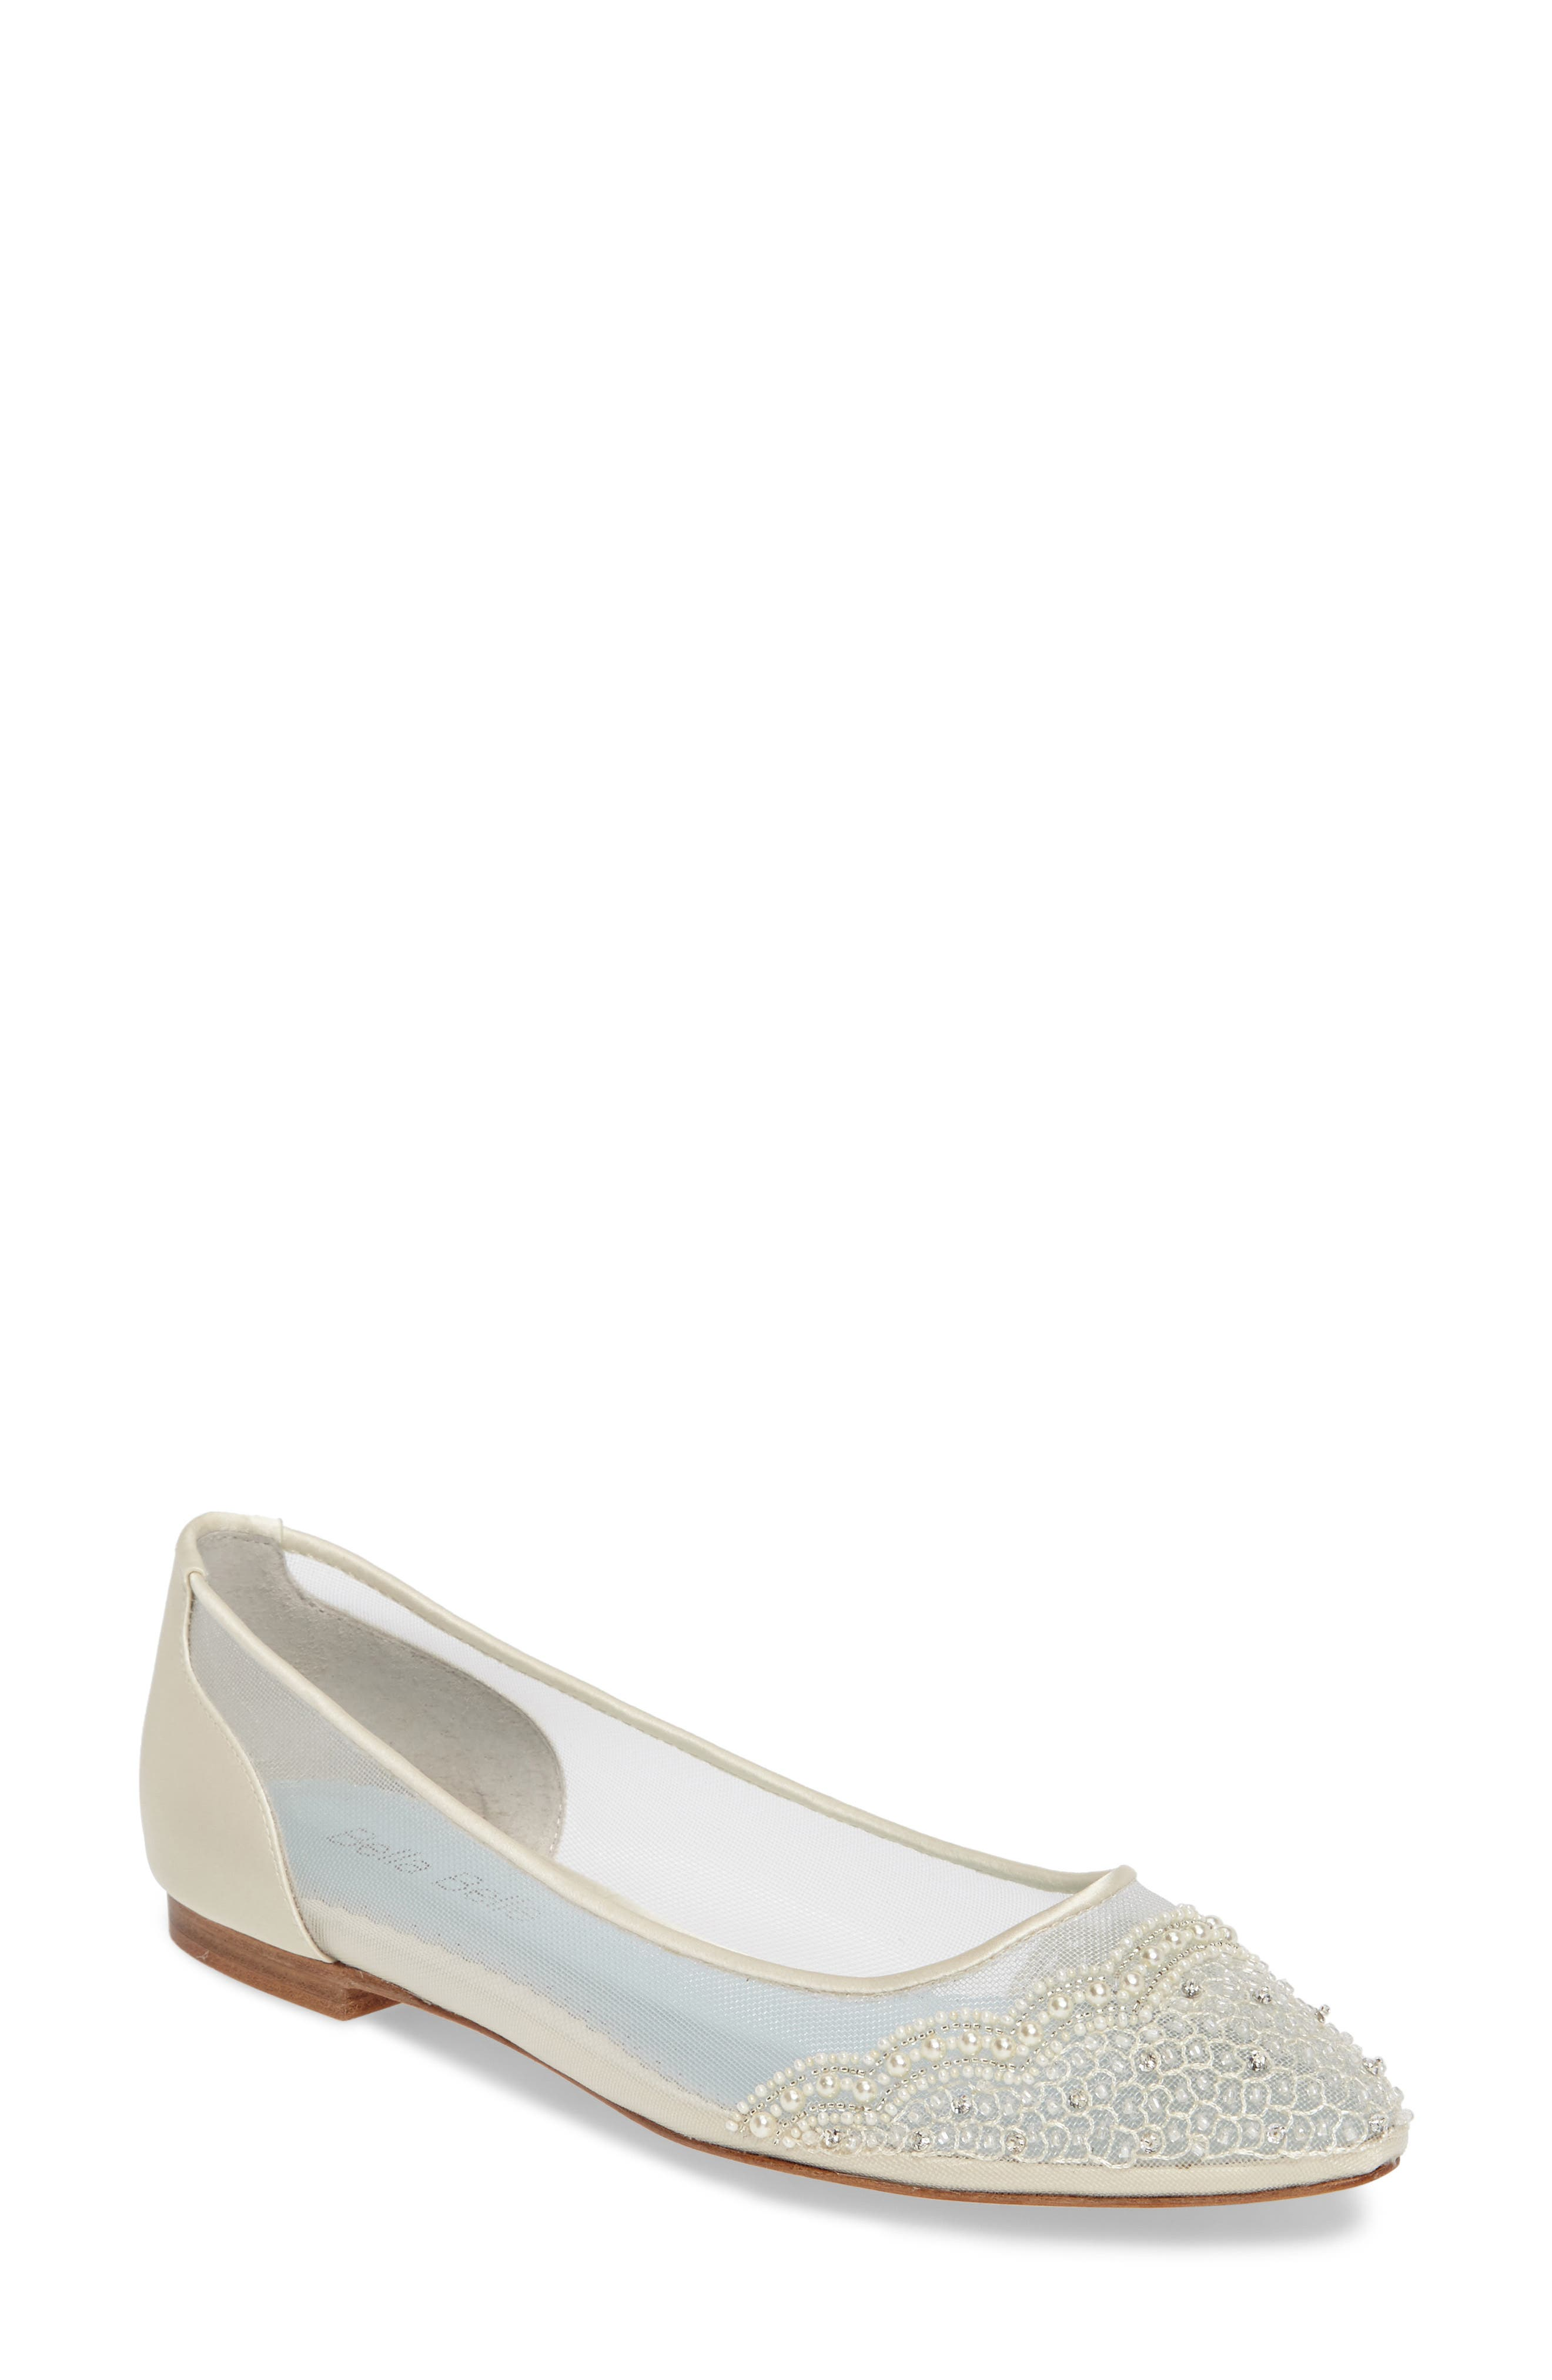 BELLA BELLE Hailey Skimmer Flat, Main, color, IVORY FABRIC